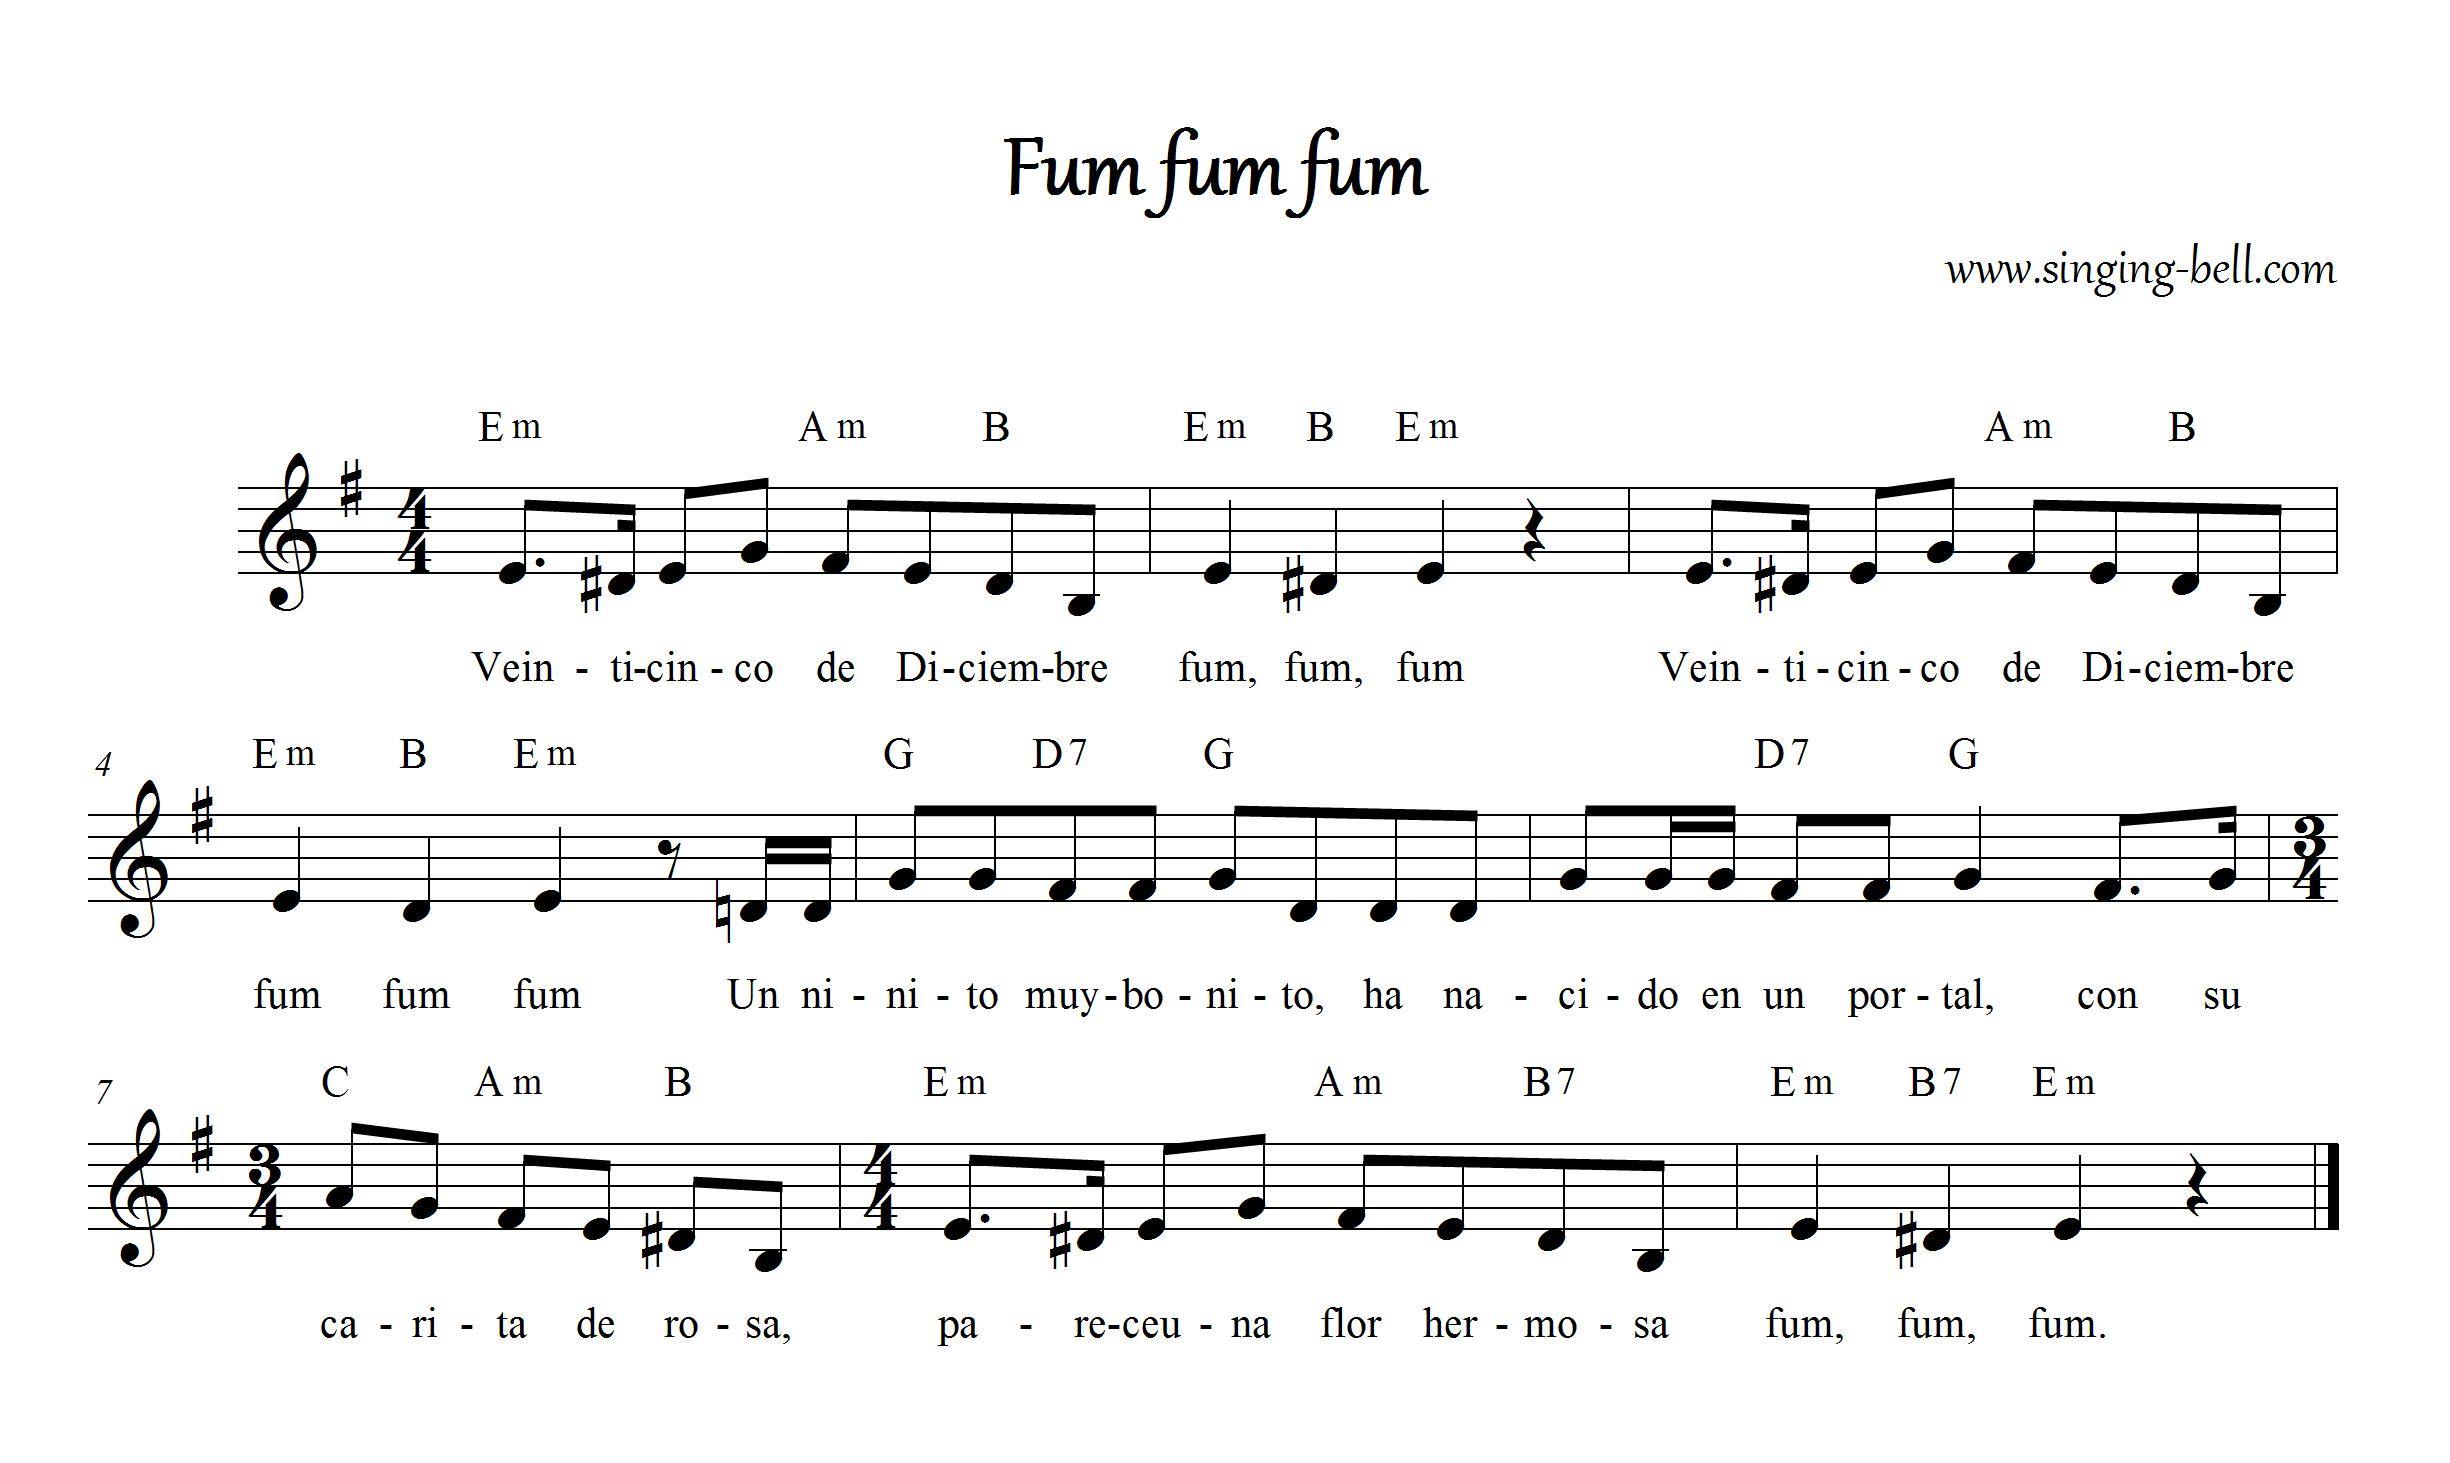 Fum Fum Fum (Spanish) - Christmas Music Score (in Em)